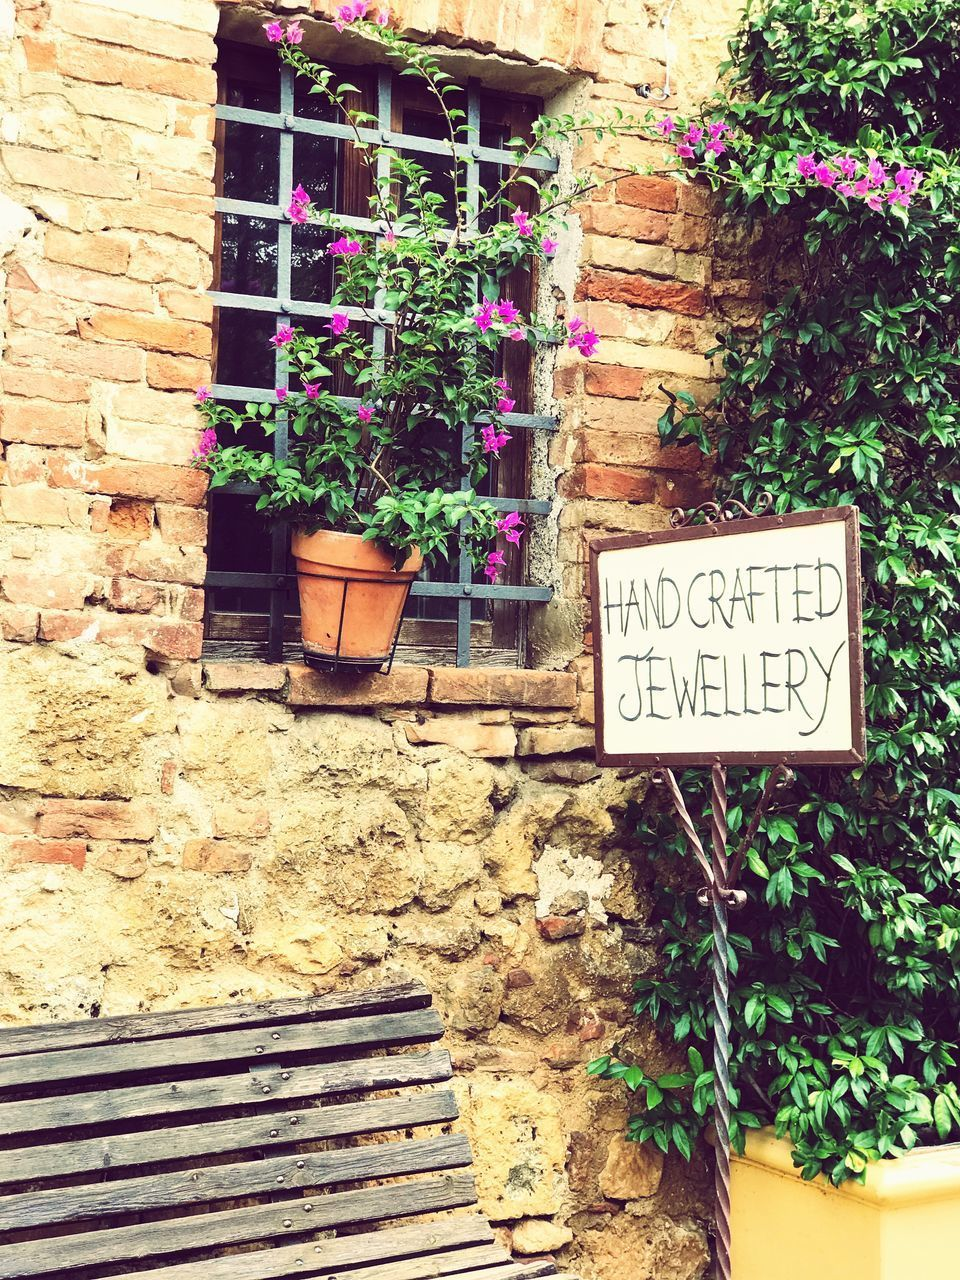 text, plant, communication, architecture, built structure, sign, potted plant, western script, no people, growth, flower, nature, flowering plant, building exterior, day, information, wall, outdoors, wall - building feature, information sign, flower pot, brick, window box, message